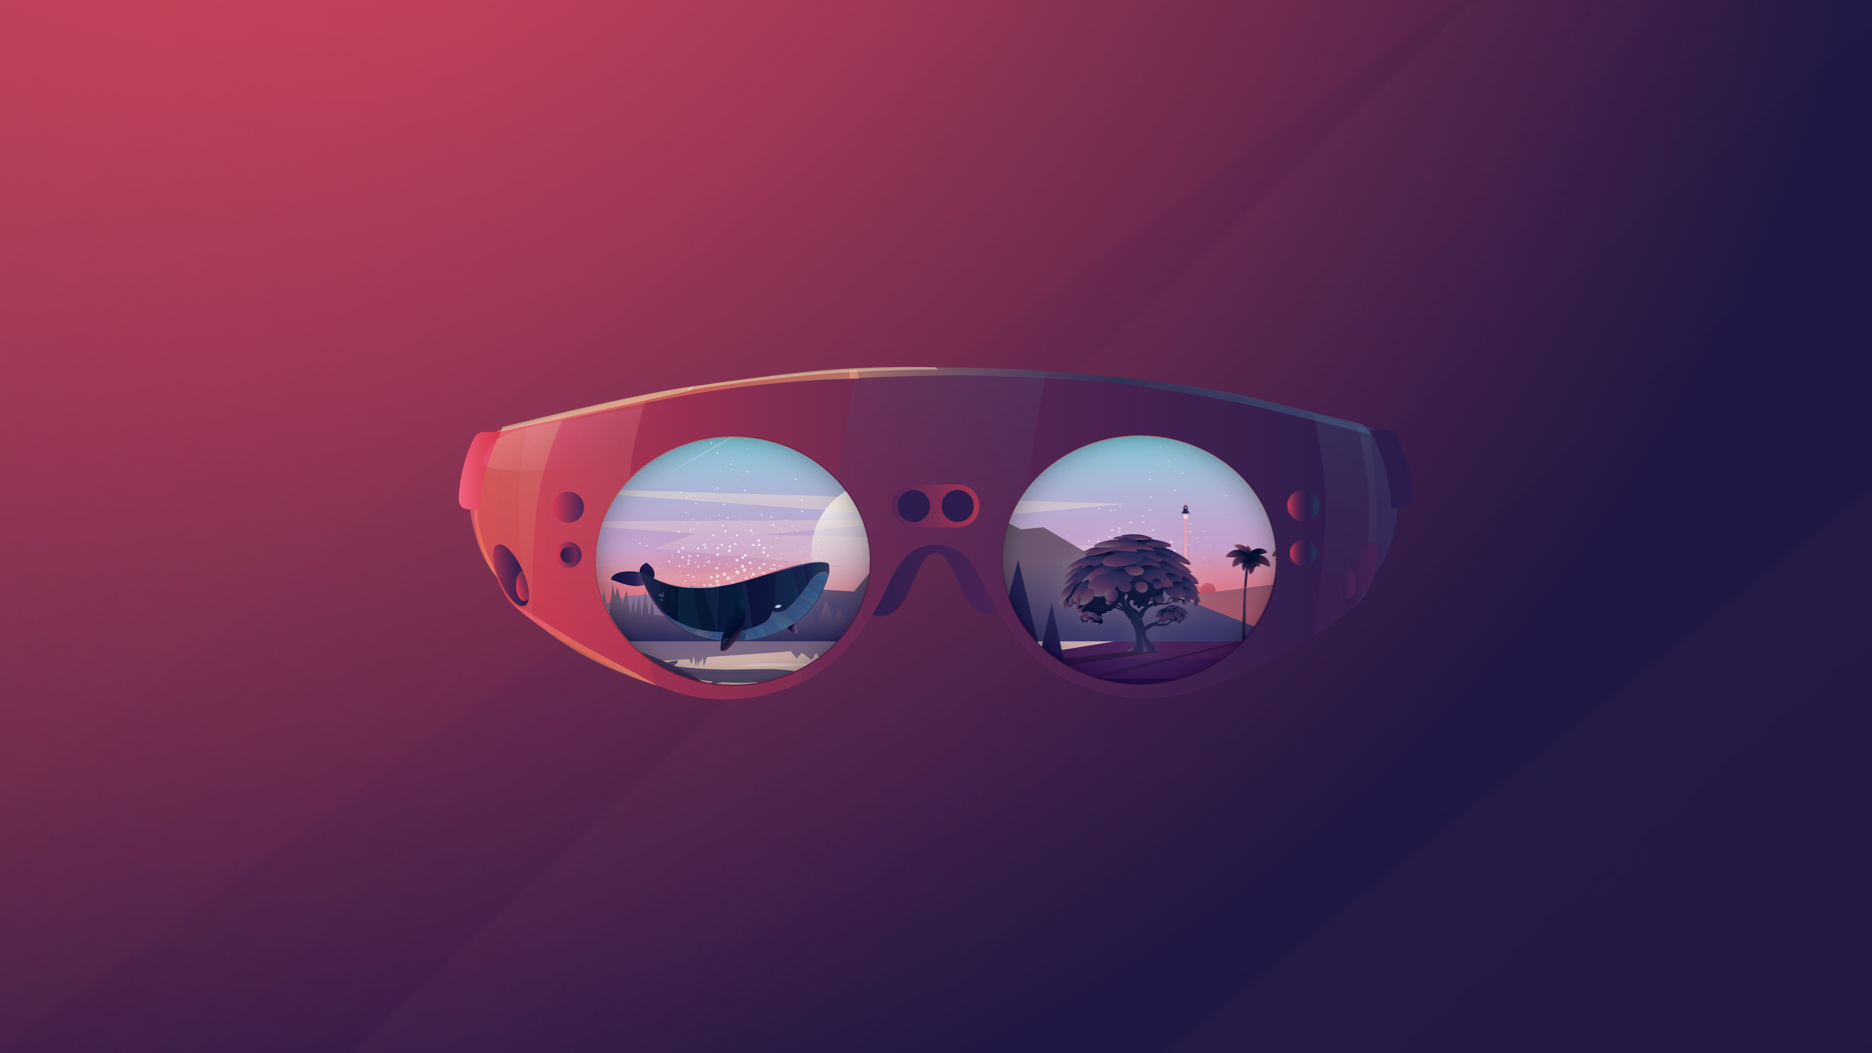 Magic Leap secures $280 million from Japan's Docomo as critics ponder its future